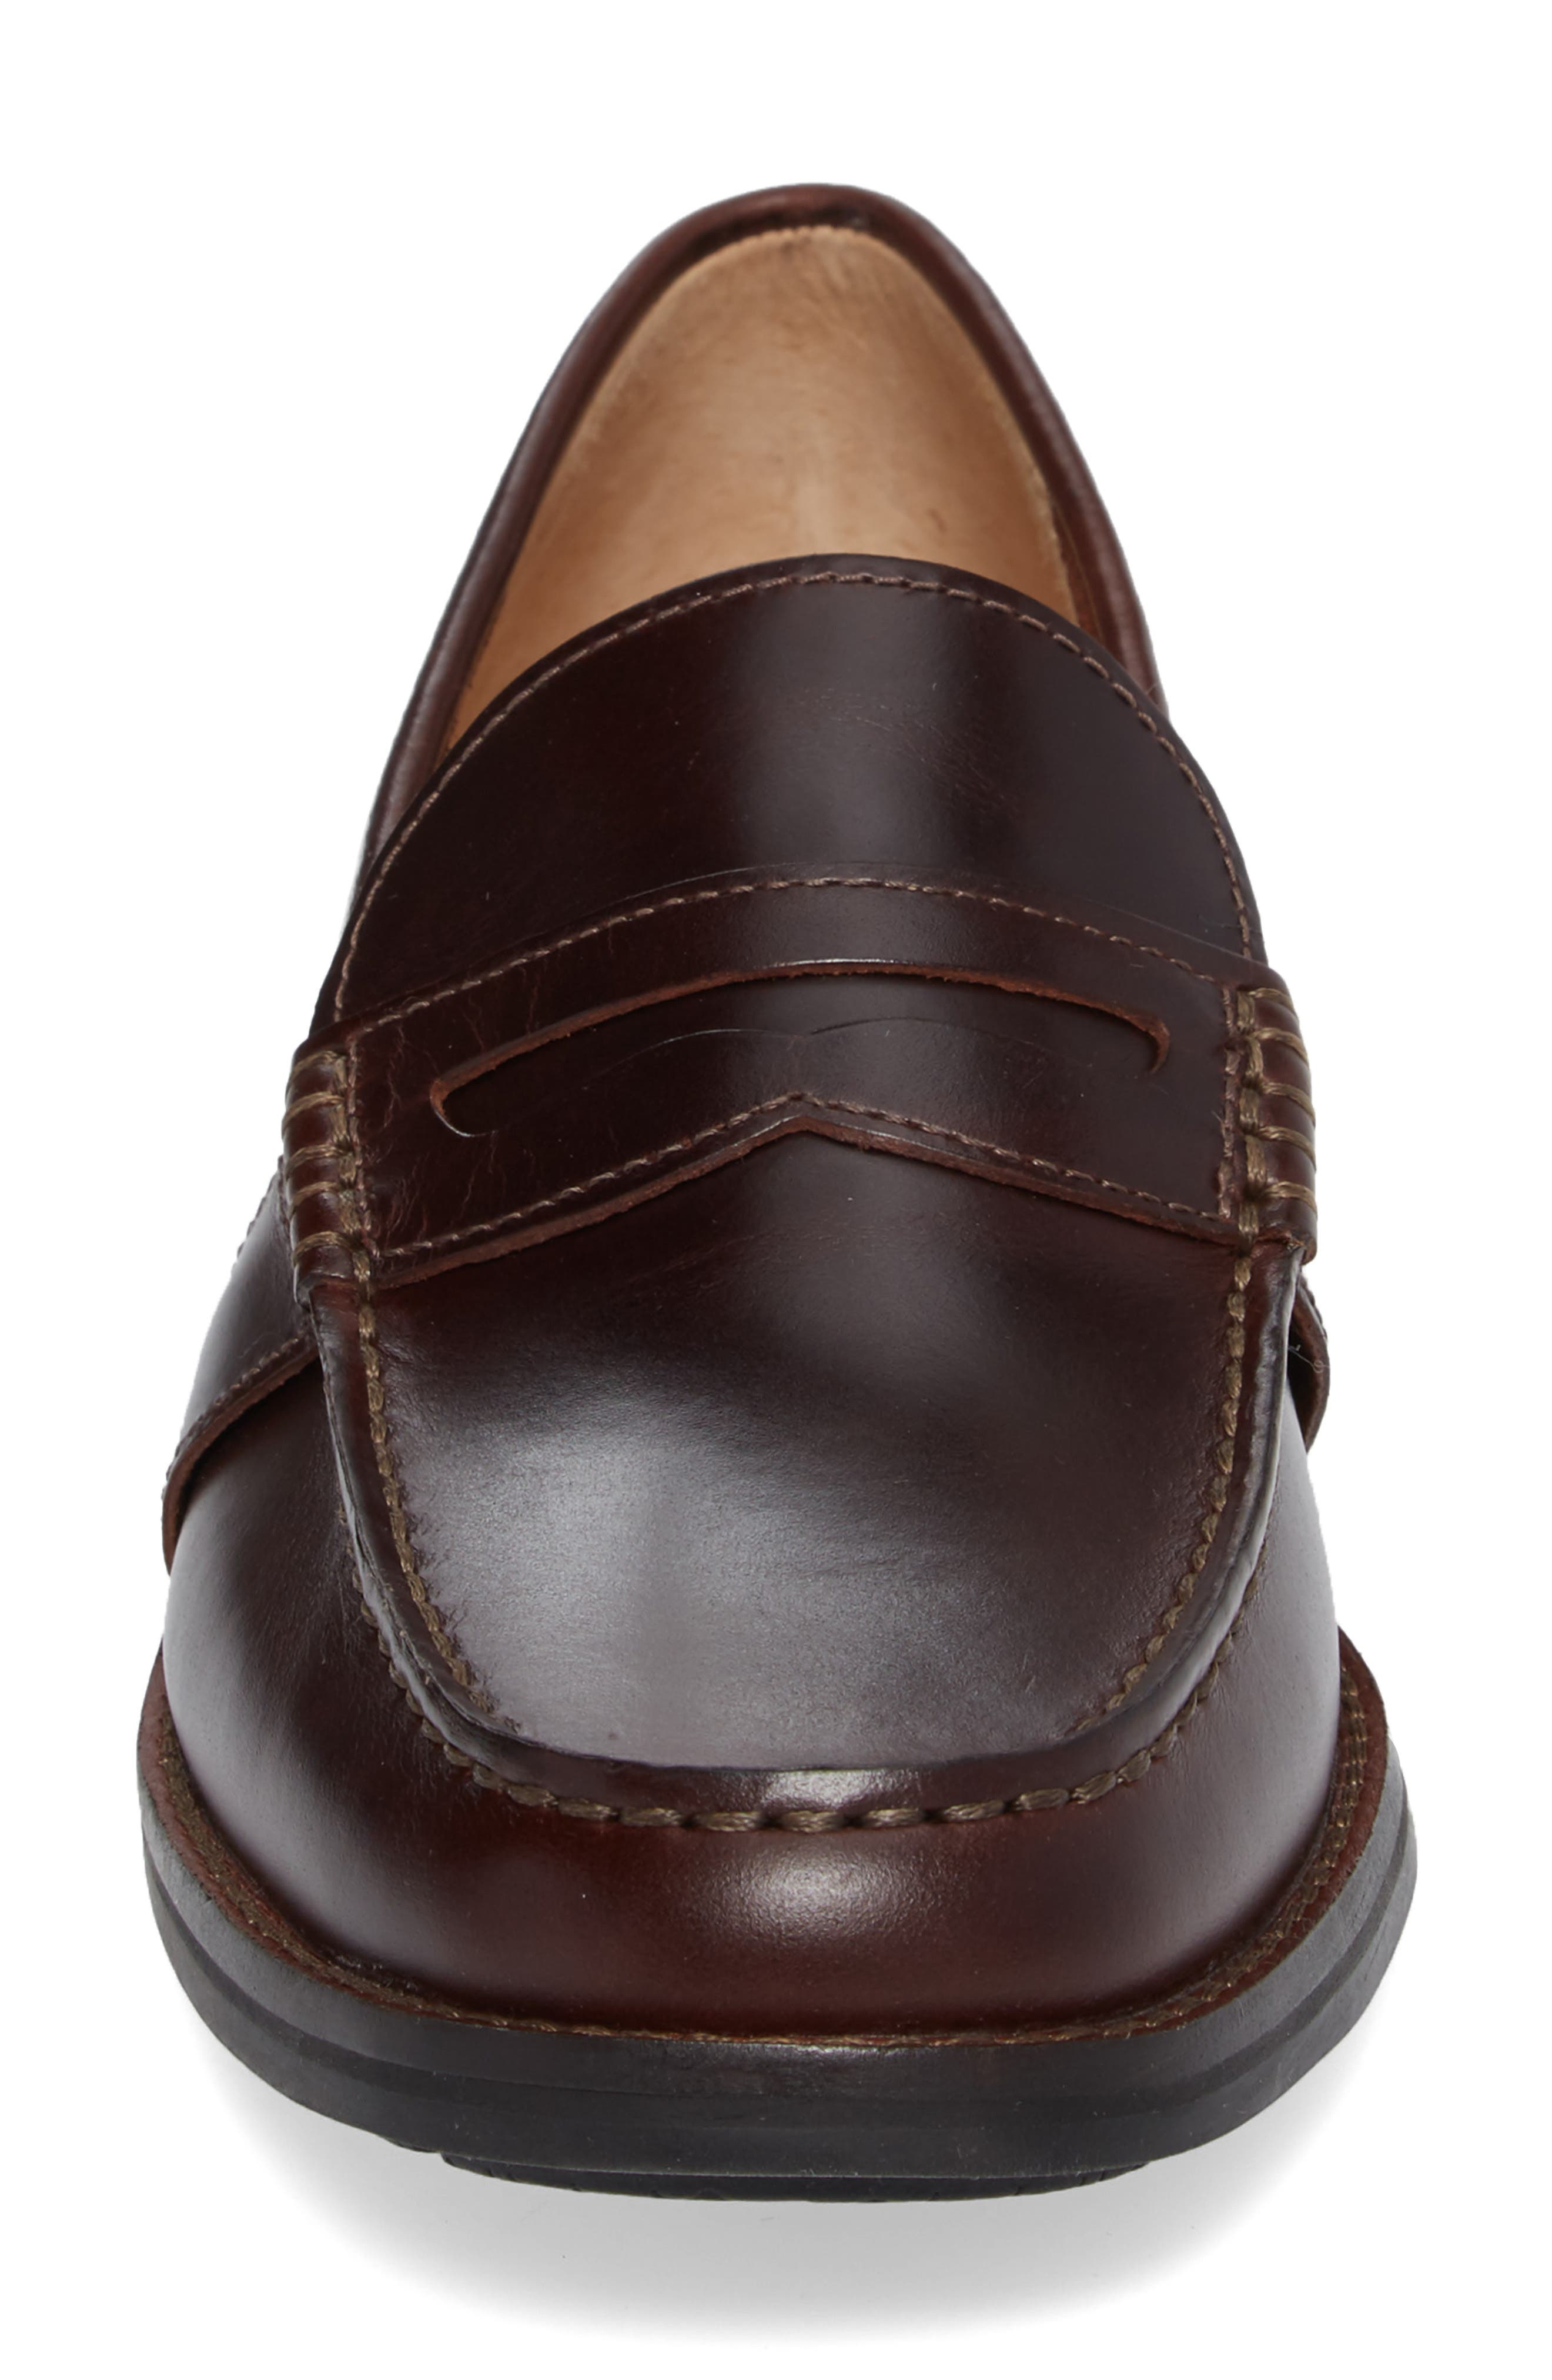 Essex Penny Loafer,                             Alternate thumbnail 4, color,                             AMARETTO LEATHER